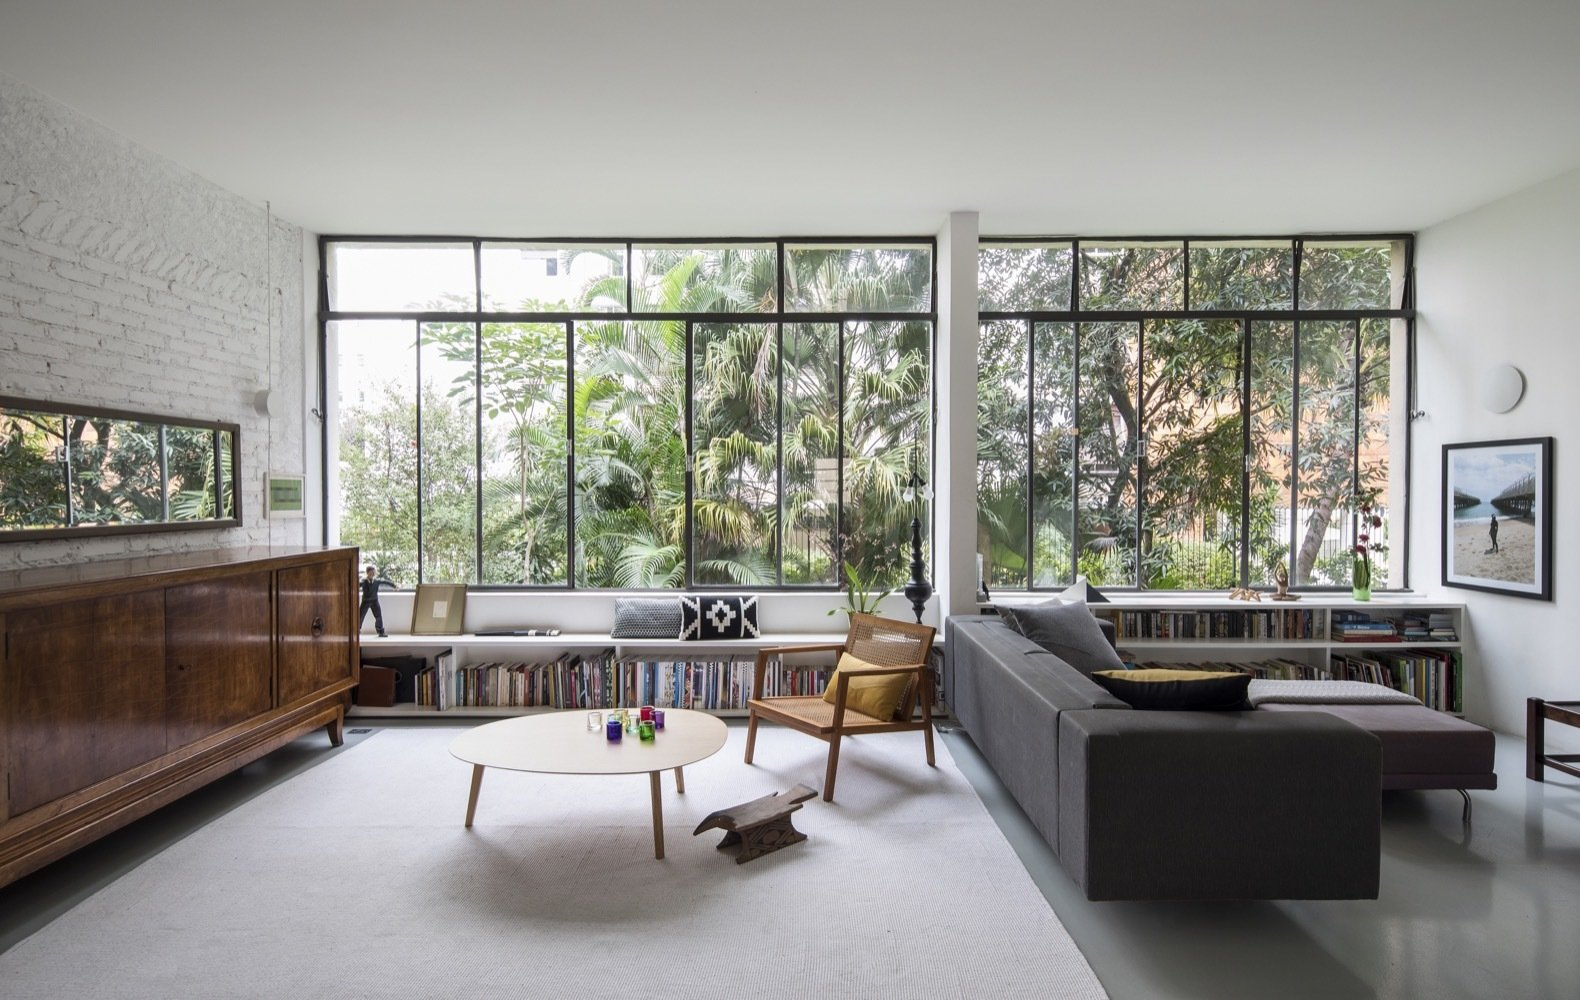 Living Room, Sofa, Laminate Floor, Storage, Chair, and Coffee Tables The original steel window frames were restored and now overlook views of a lush canopy.    Photo 2 of 13 in Greenery Breathes Fresh Life Into a Brazilian Midcentury